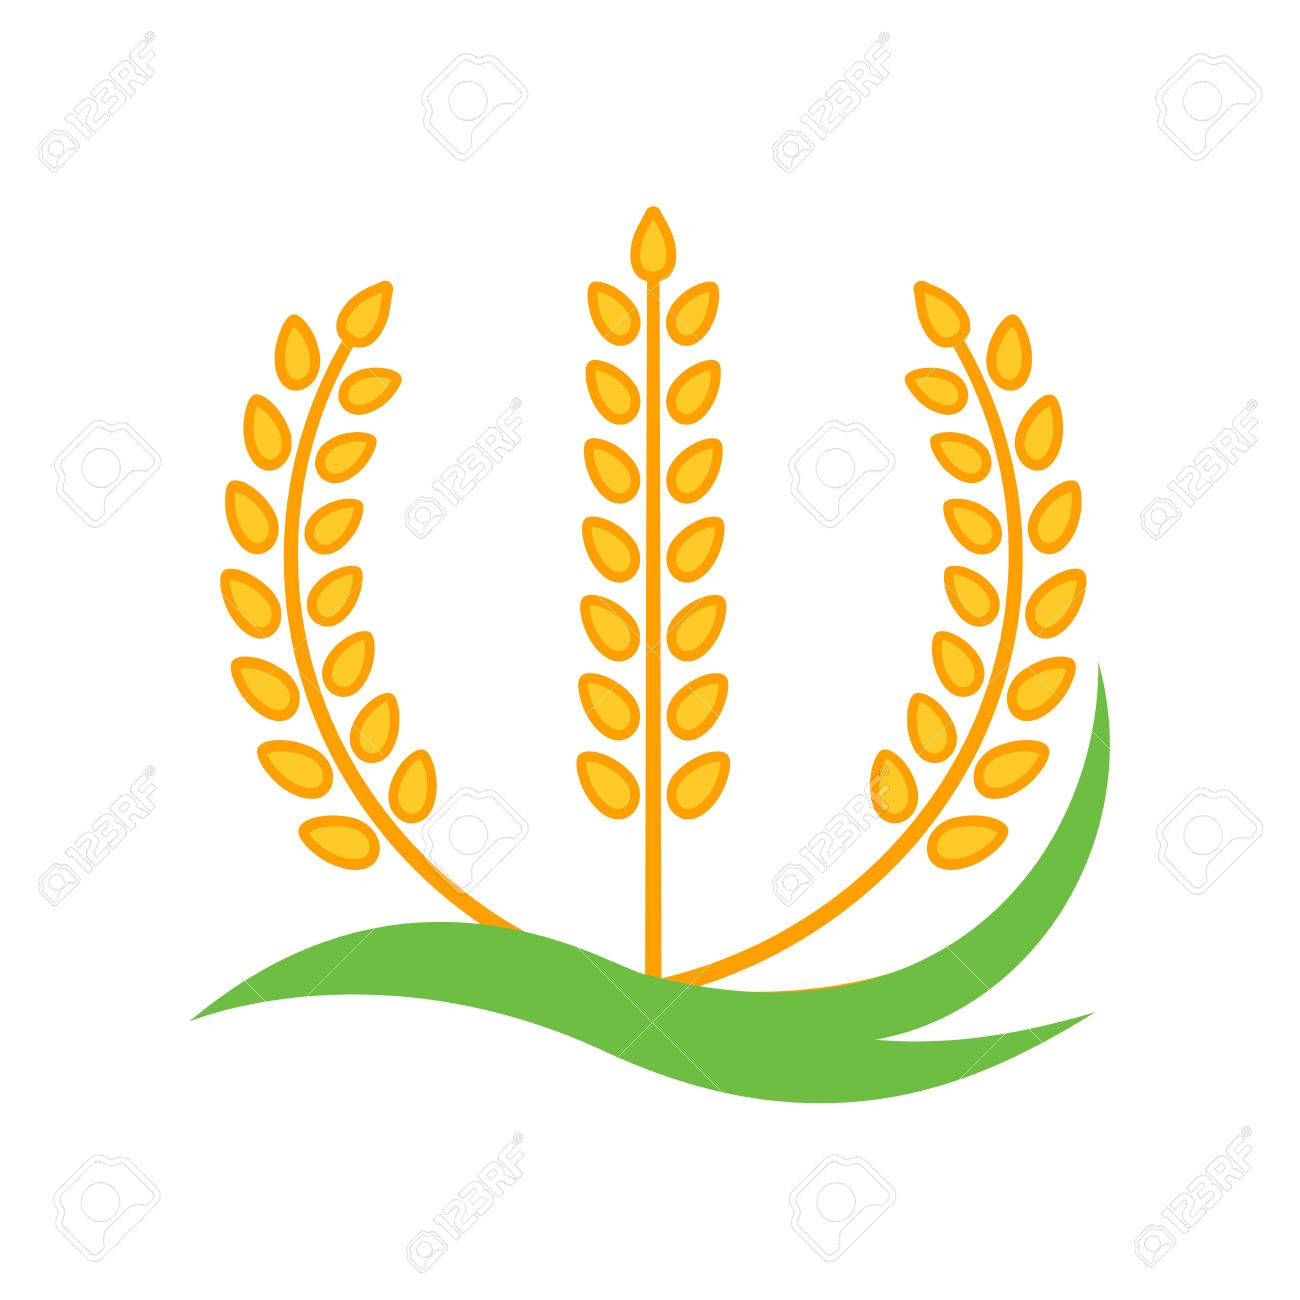 wheat barley spike yellow isolated on white background royalty free rh 123rf com wheat barley vector barley vector logo